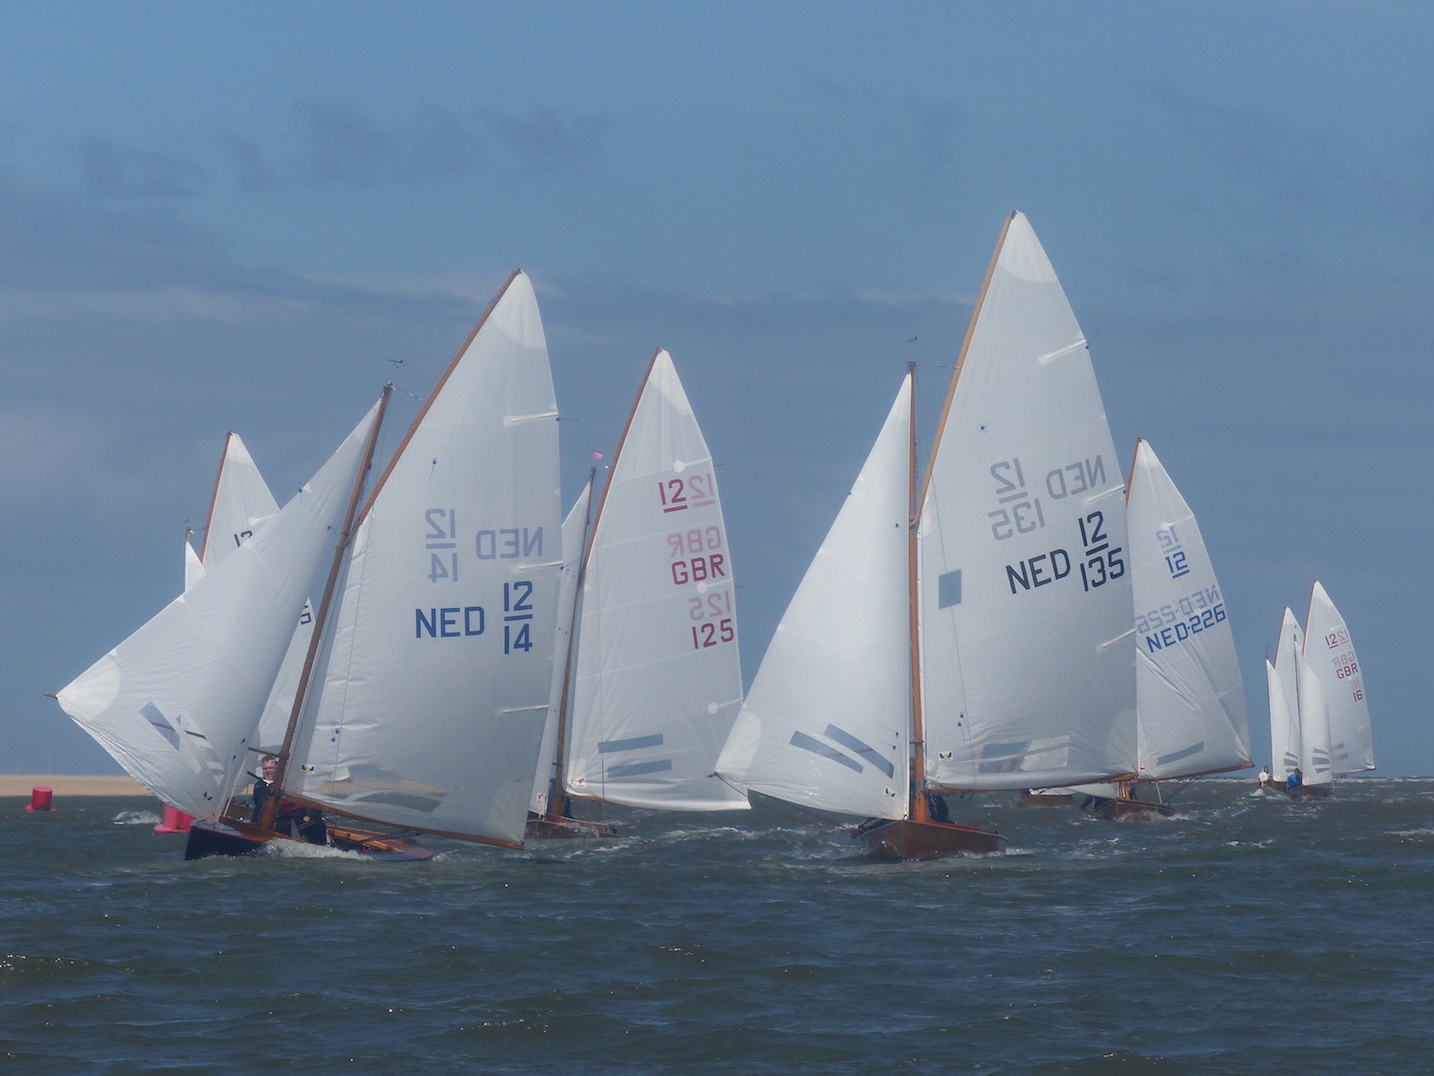 WSC NED14 and NED135